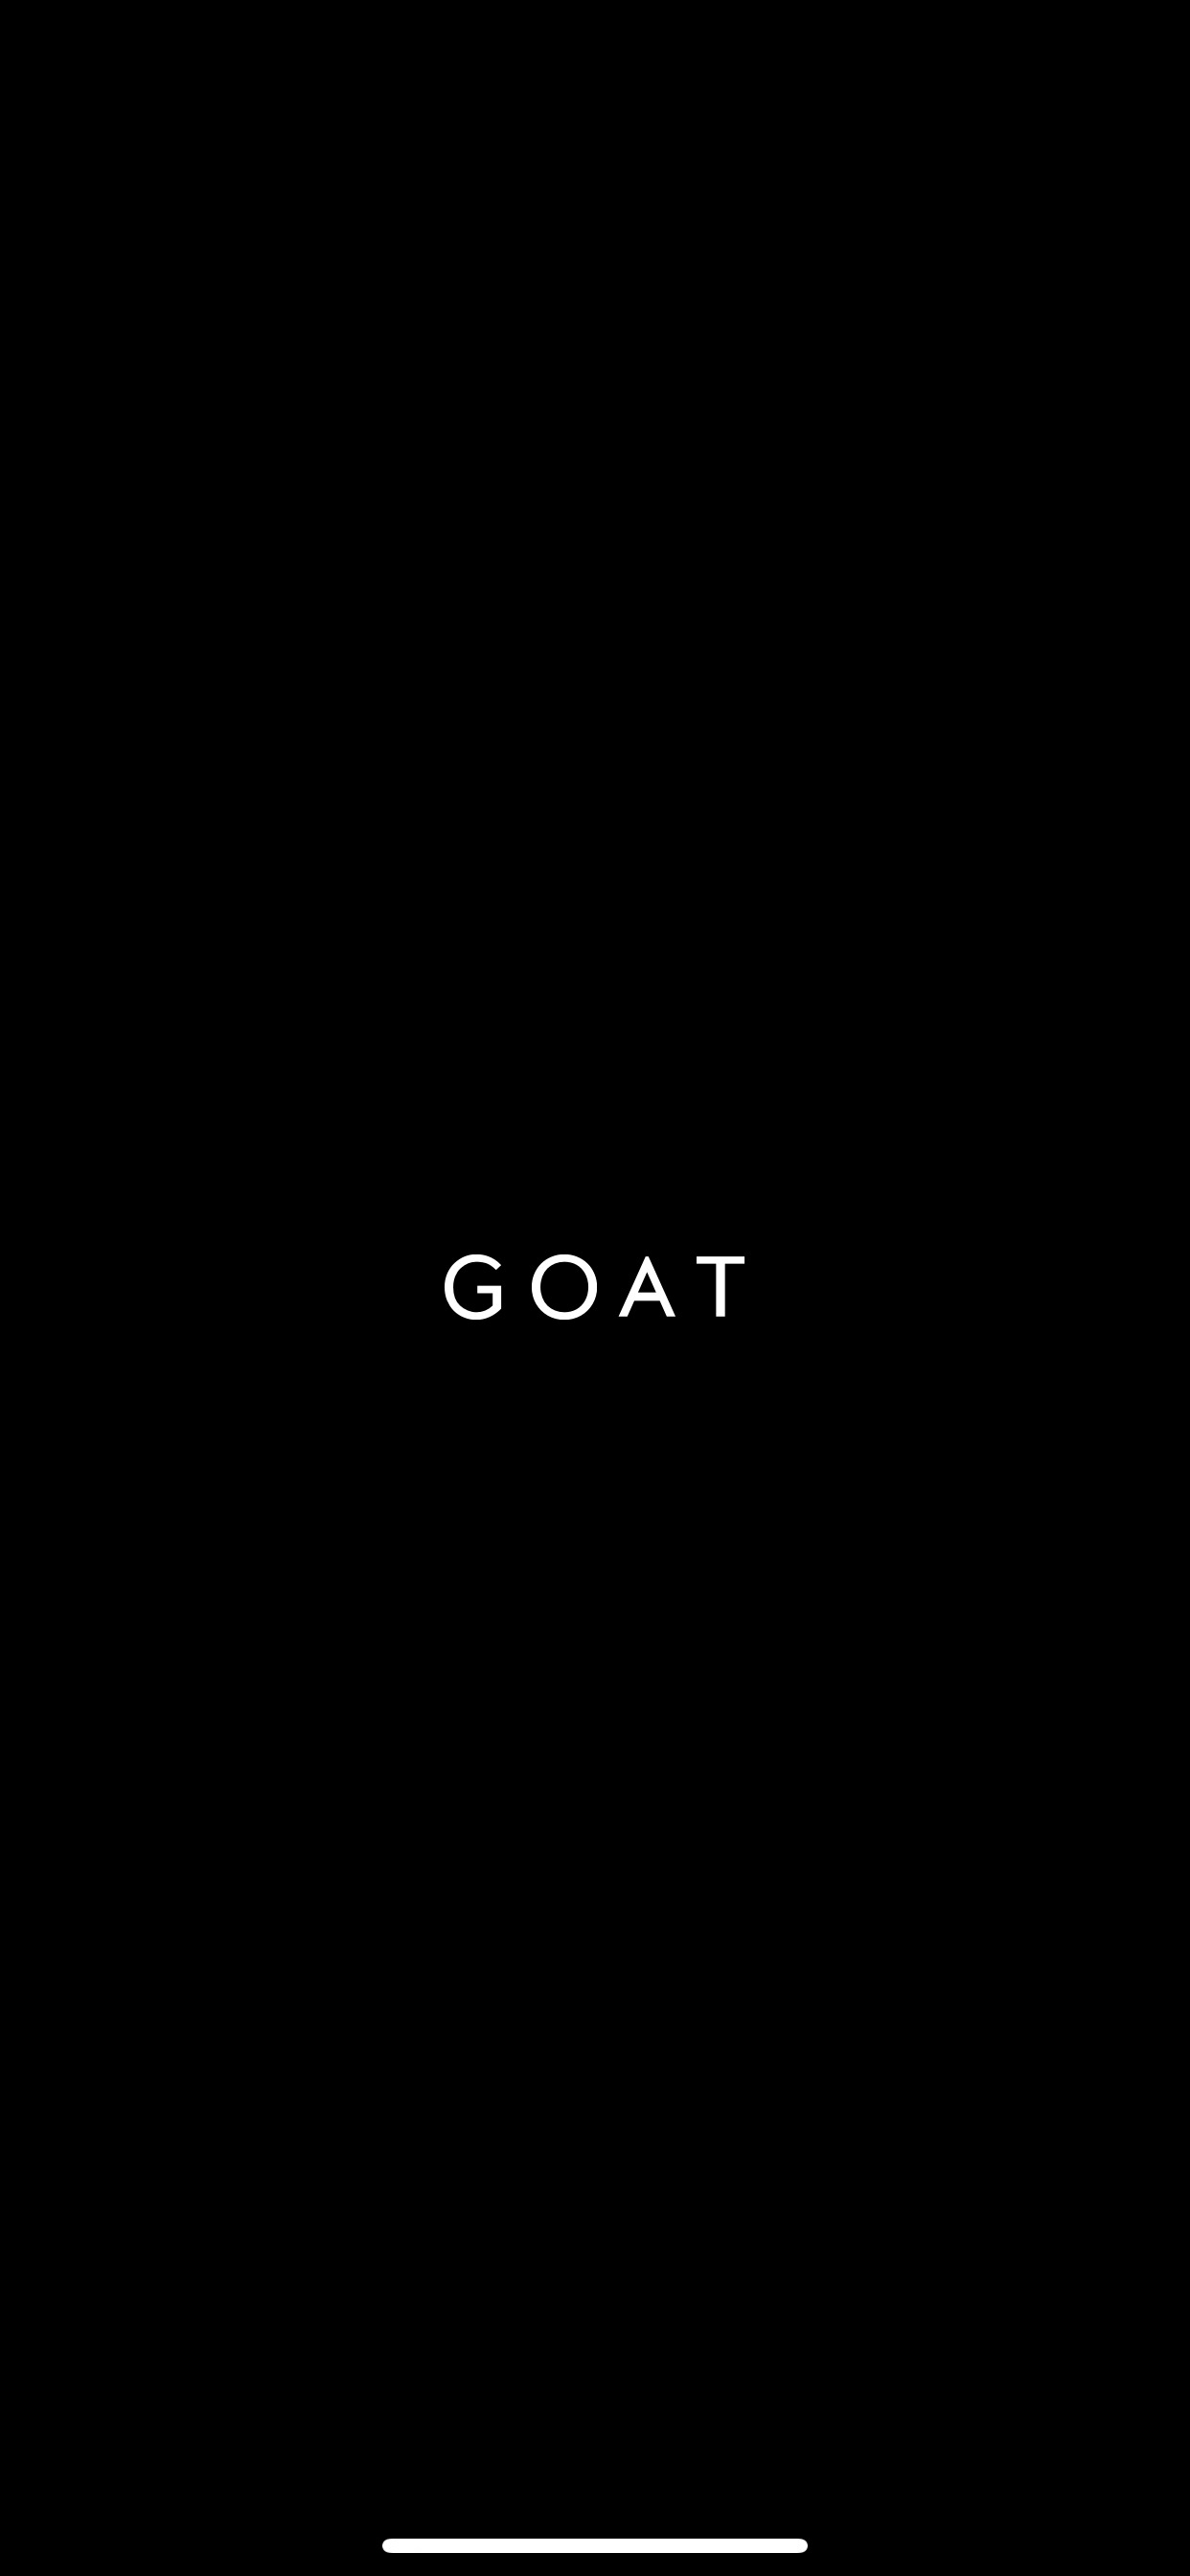 Goat (iPhone X)